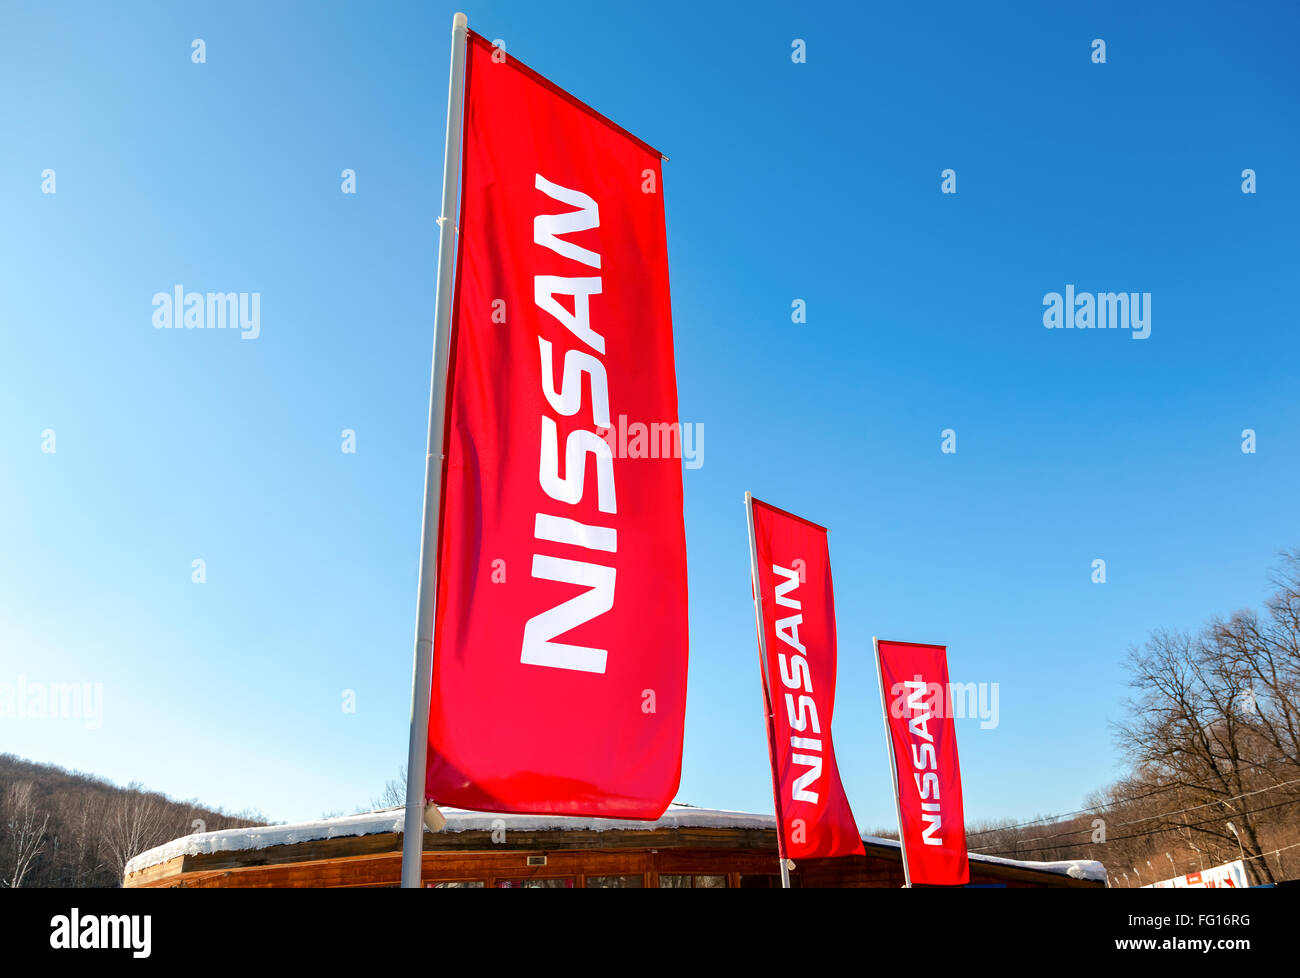 Nissan Dealership Indianapolis >> Nissan Motor Company Stock Photos & Nissan Motor Company Stock Images - Alamy